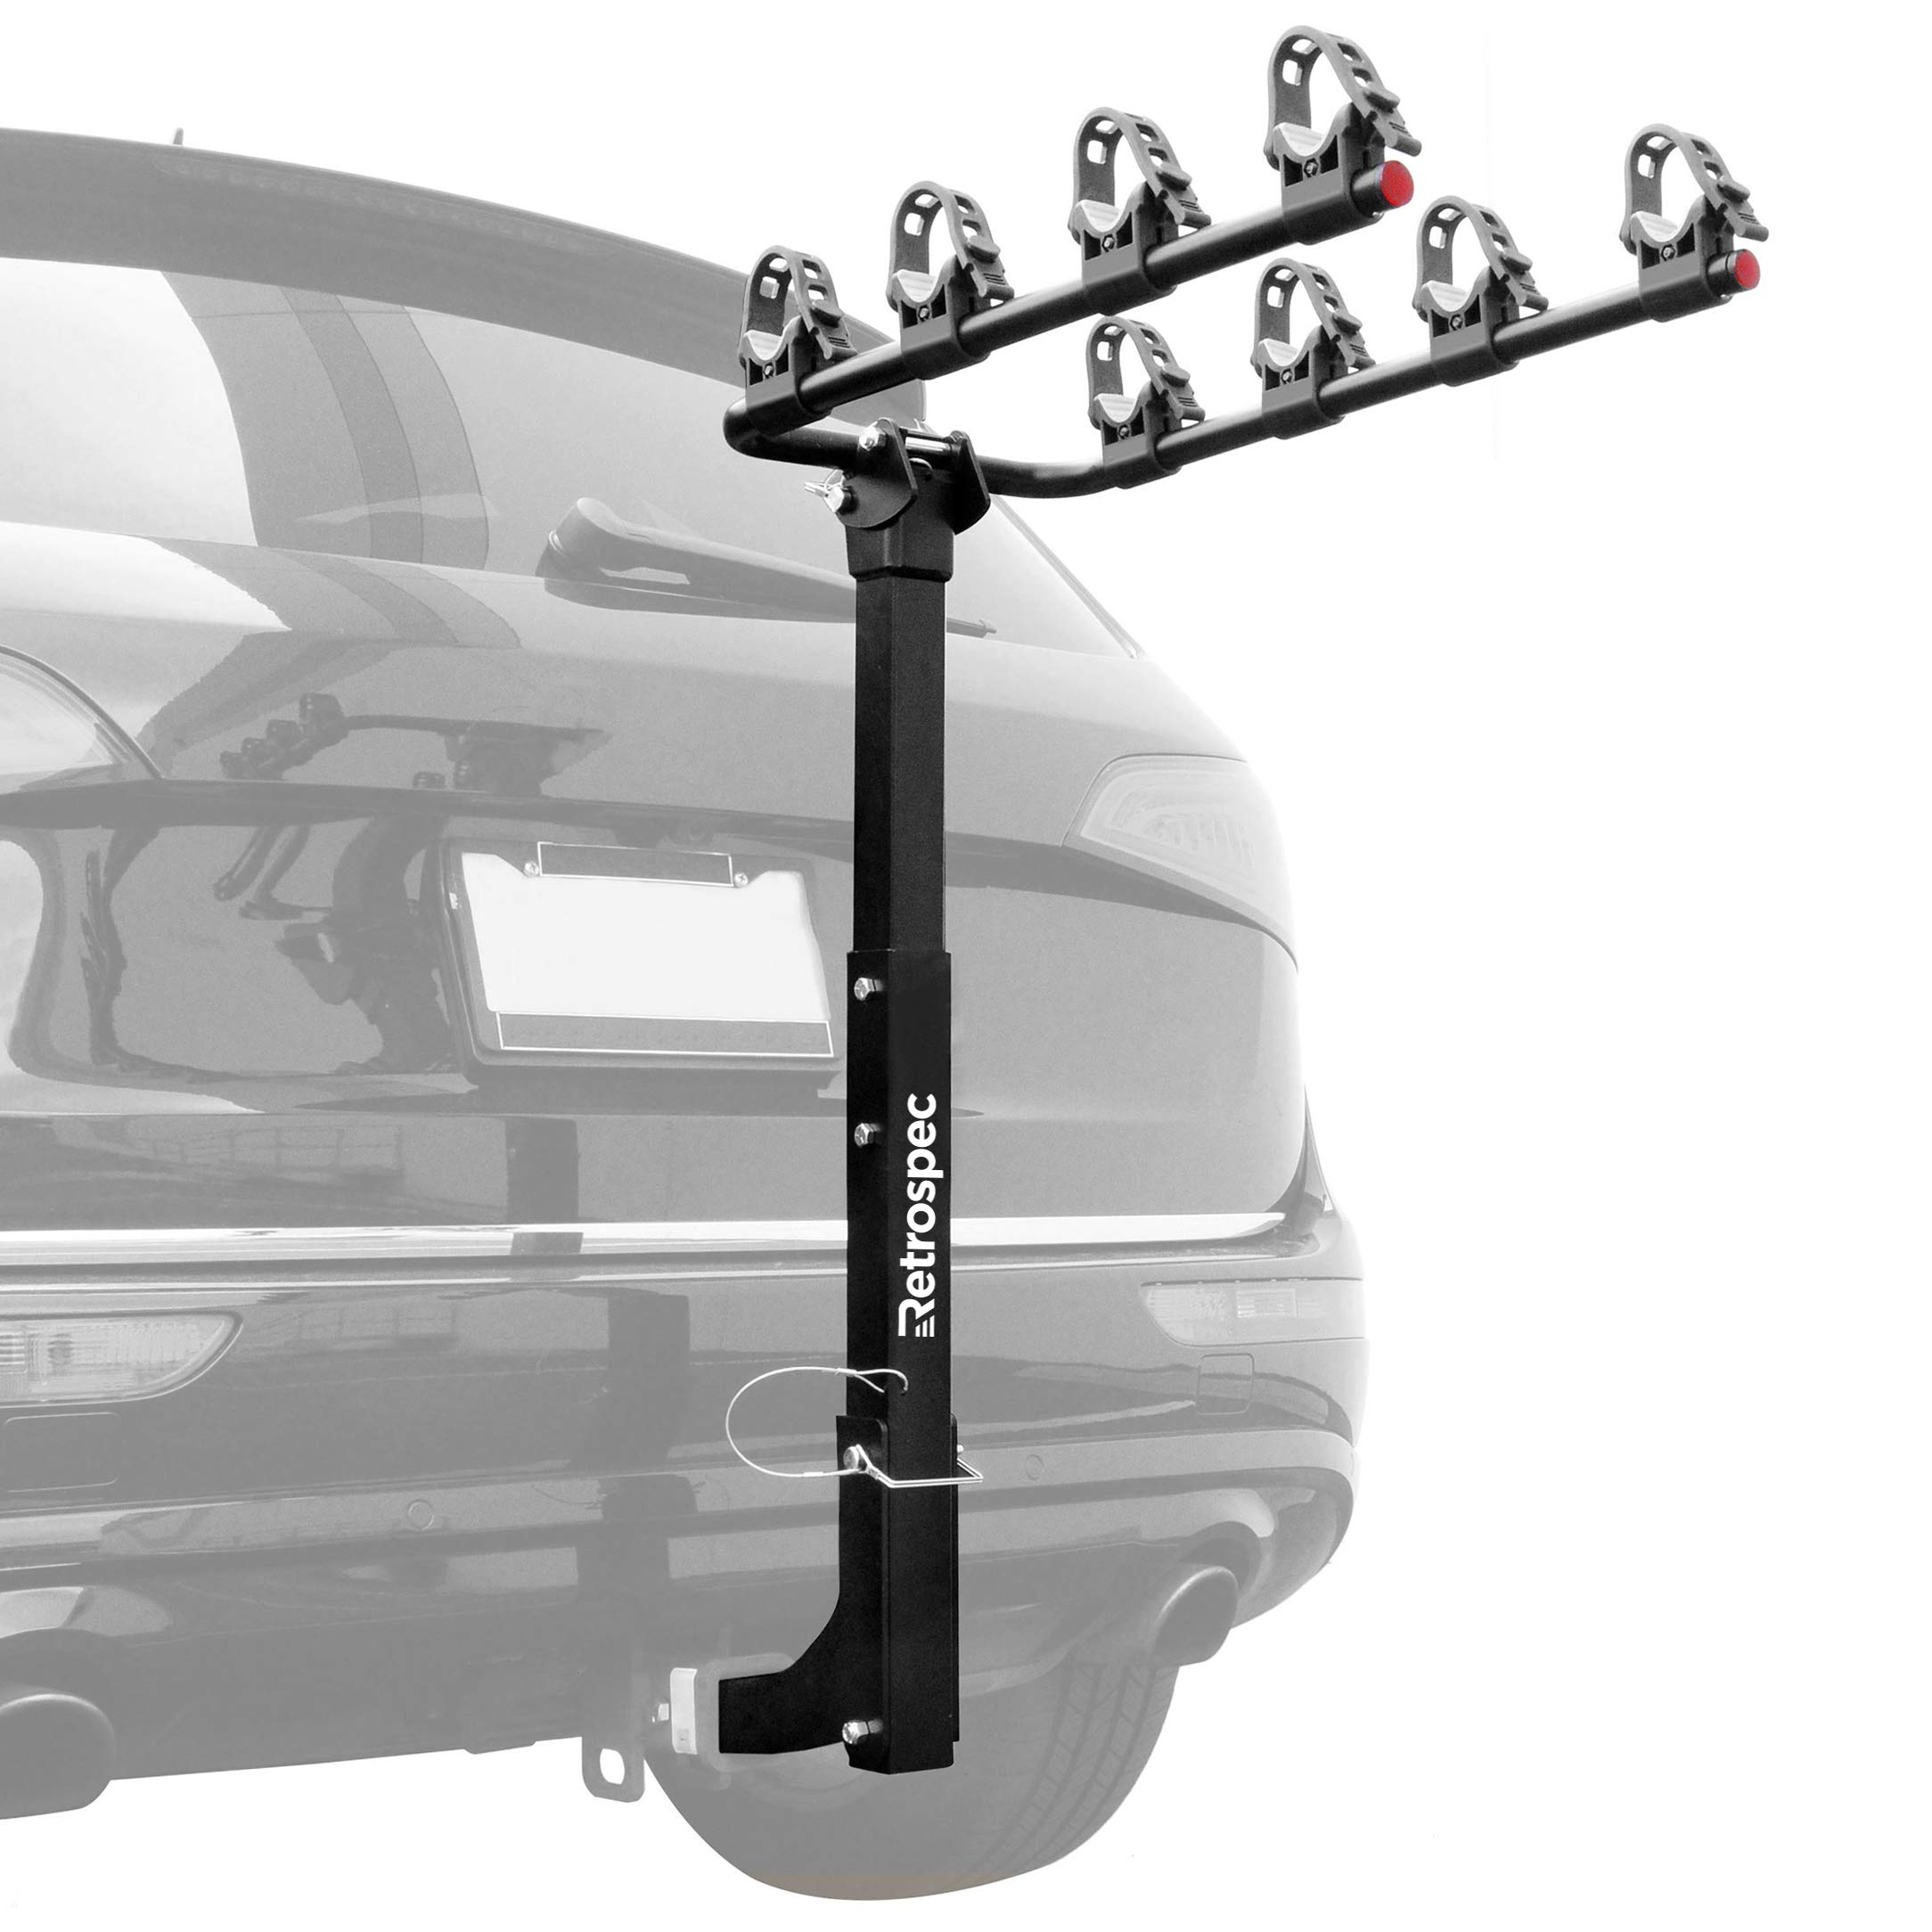 Retrospec 2 Inch Receiver Bicycle Carrier